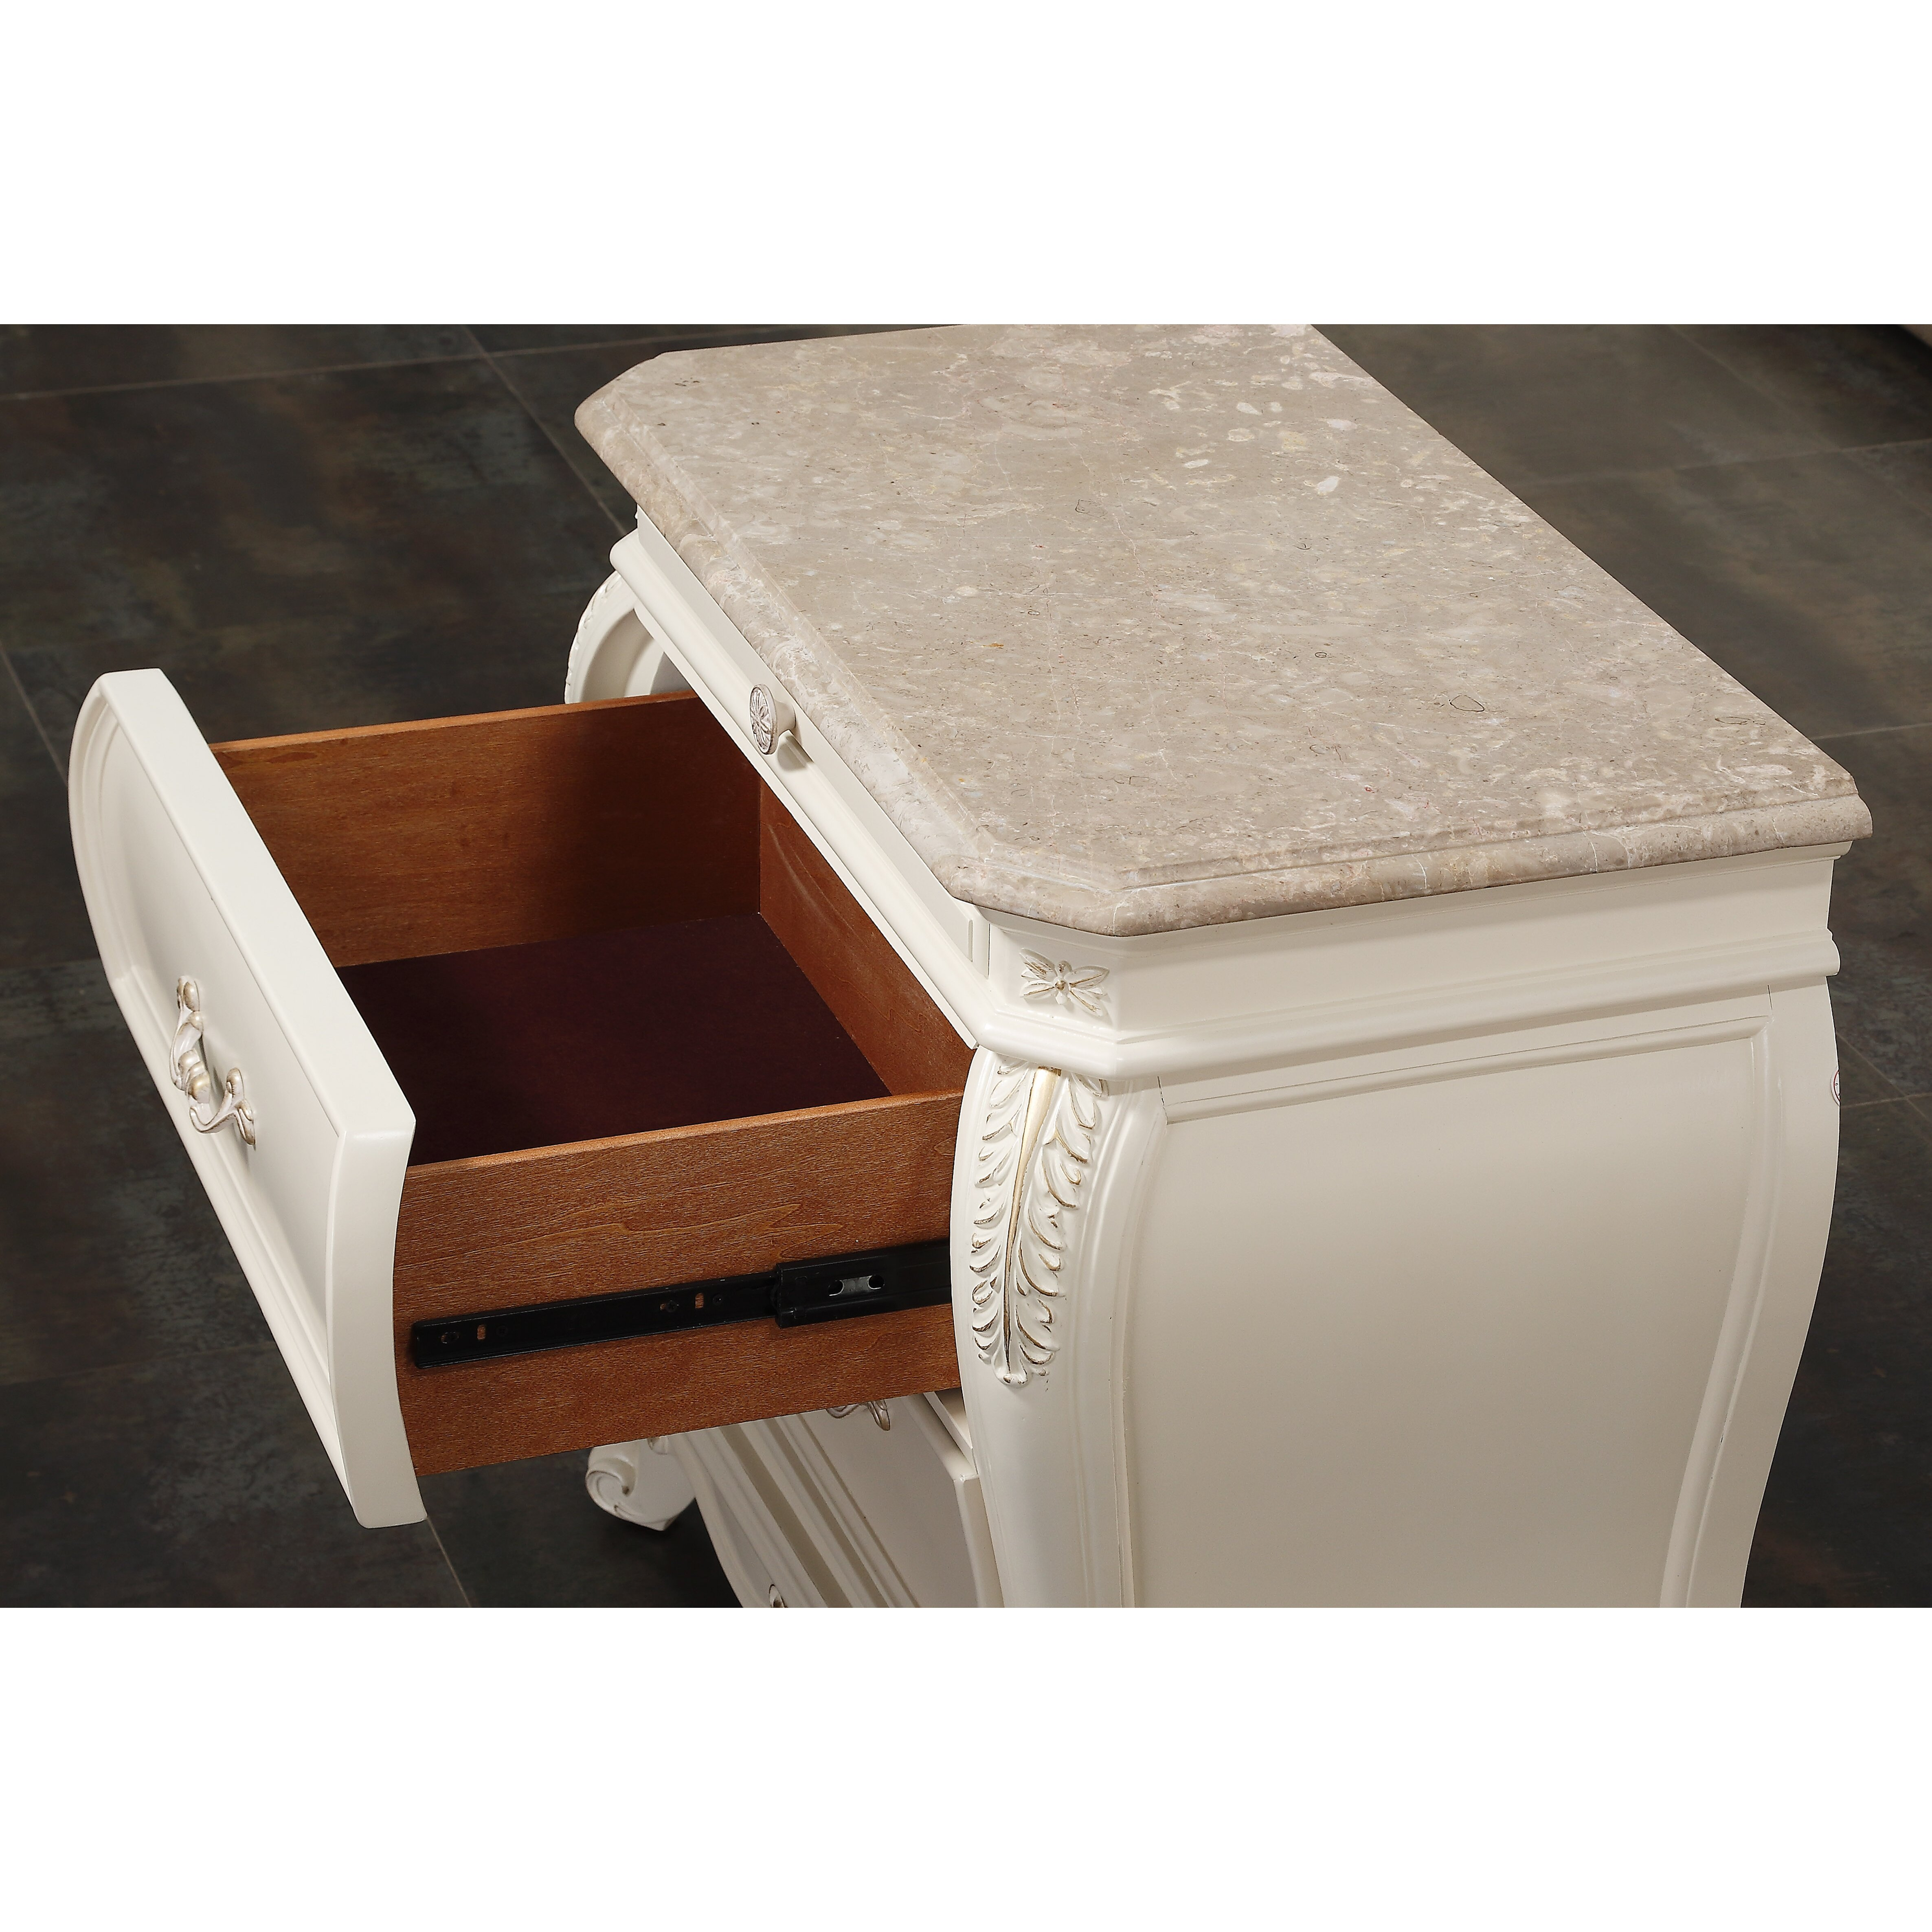 Meridian furniture usa marquee 2 drawer nightstand for Furniture usa